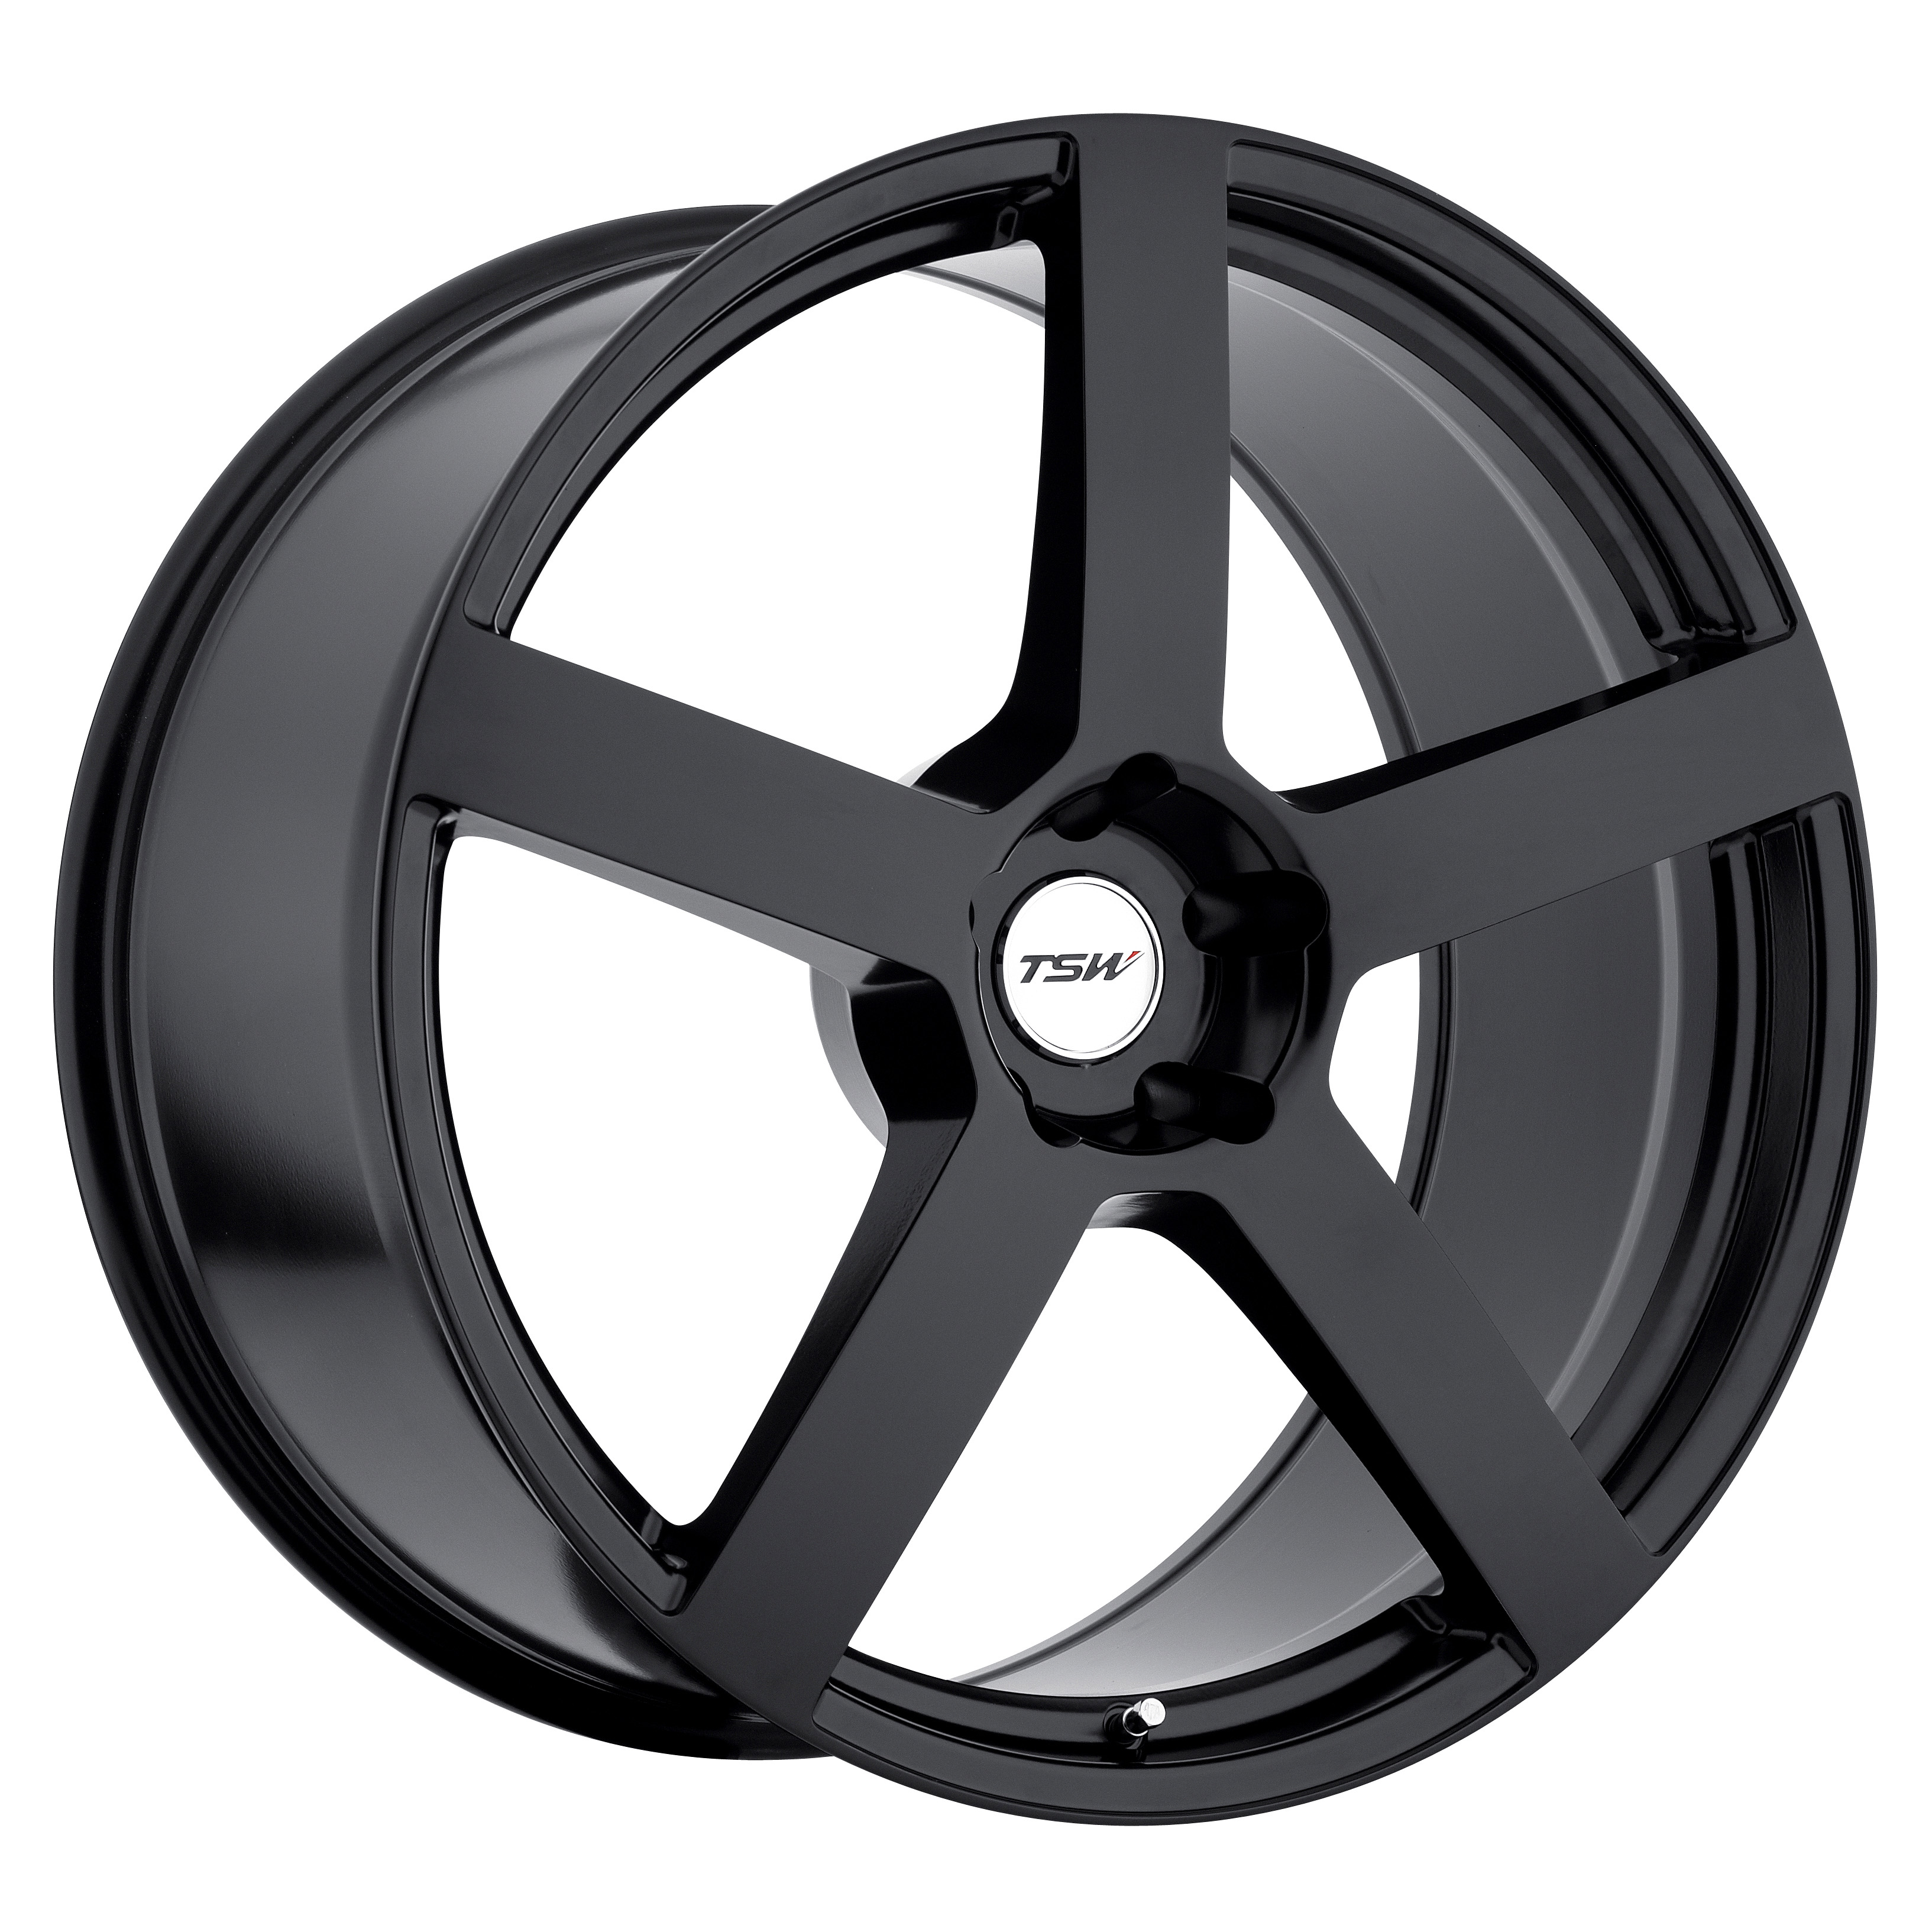 Experts in Discount 22 Inch Chrome Rims & Wheels Packages for Sale, Omega Luxury Rims for sale, discount DVS Rims, 51Fifty Wheel Design, black Wheels Package, cheap Wheels package, chrome discount, Chrome Rim Shop.